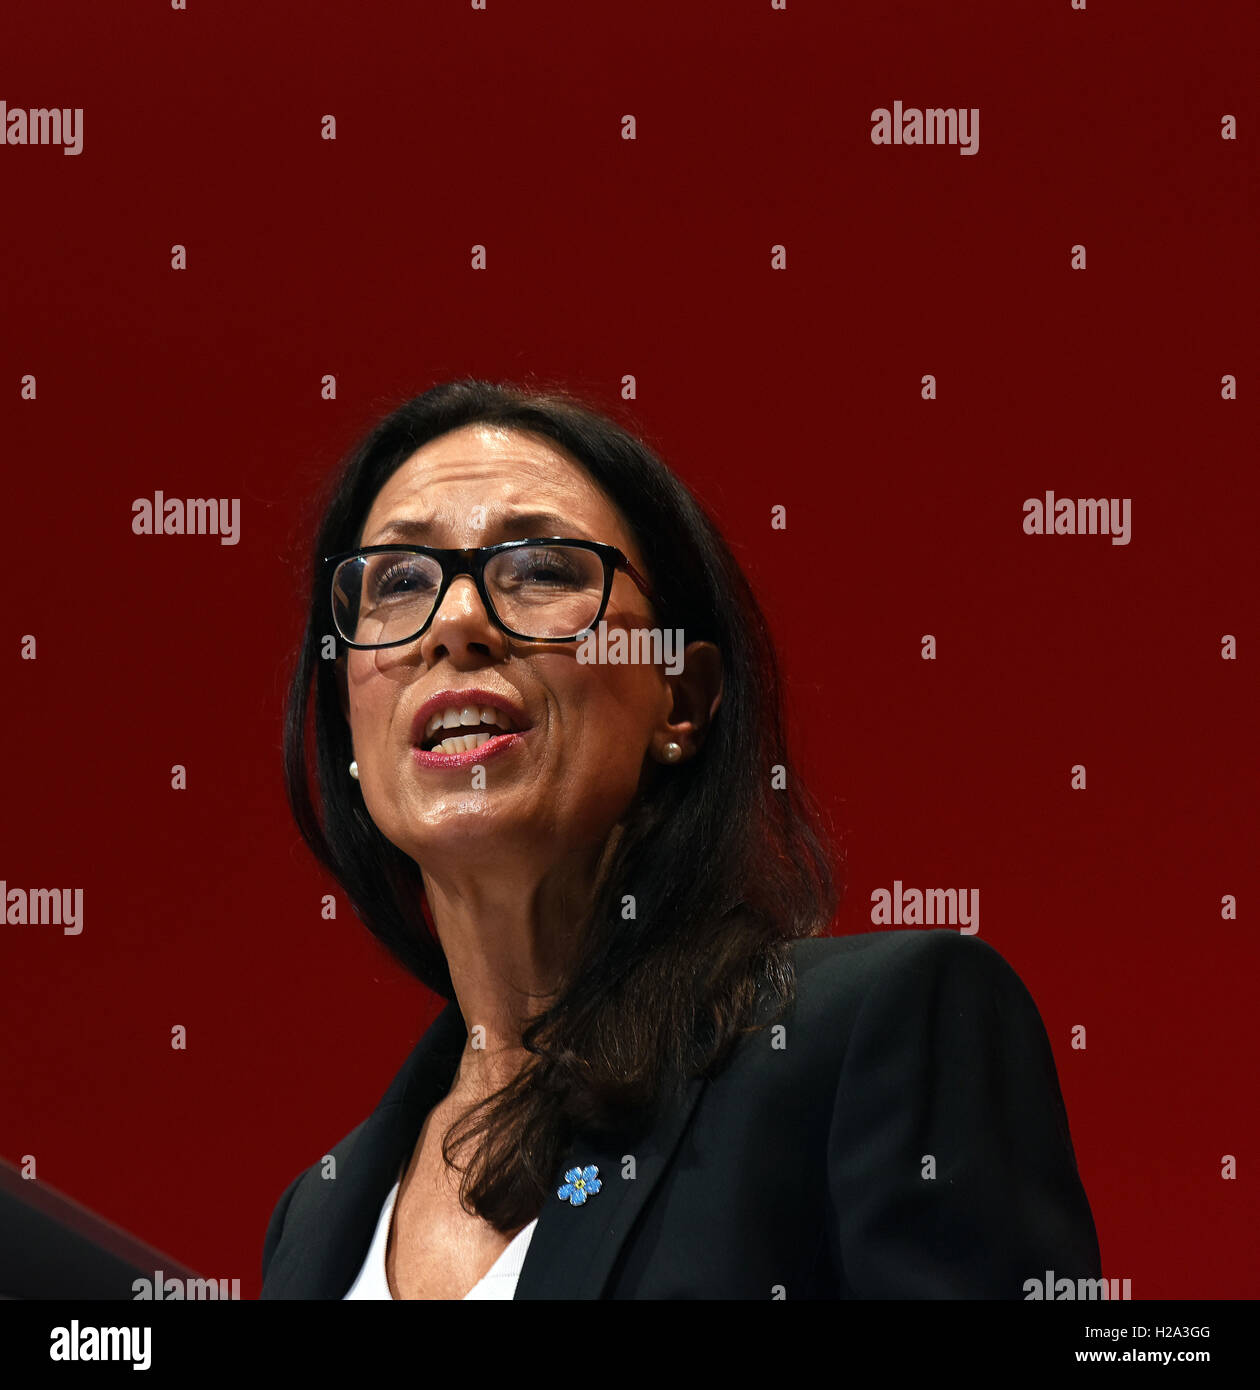 Liverpool, UK. 26th September, 2016. Debbie Abrahams MP Shadow Secretary for Work and Pensions speaking at the Labour - Stock Image